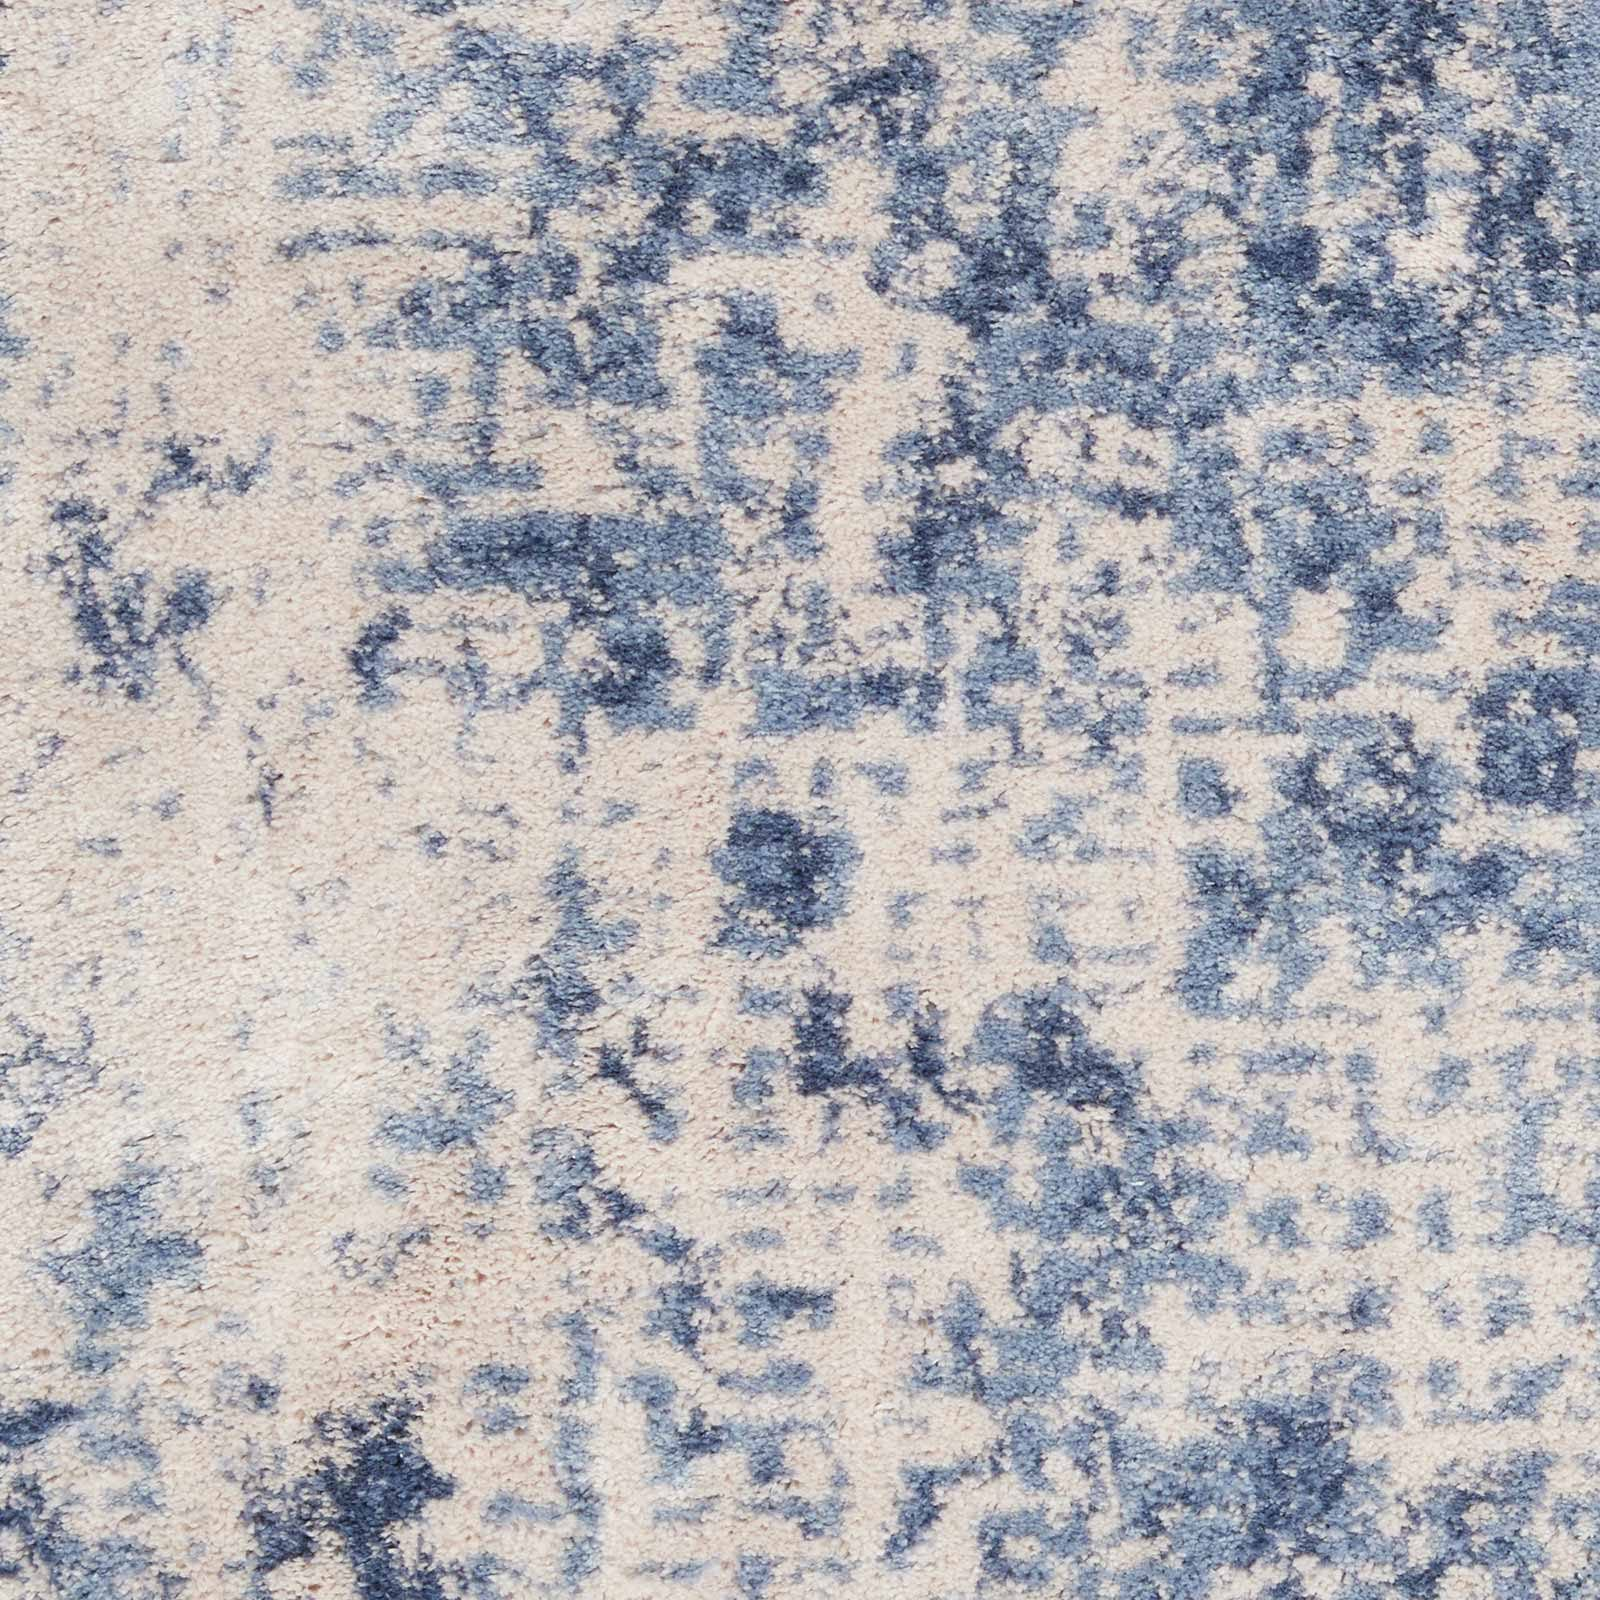 Andessi tapijt Silky Textures SLY01 IVORY BLUE 4x6 099446709677 swatch C